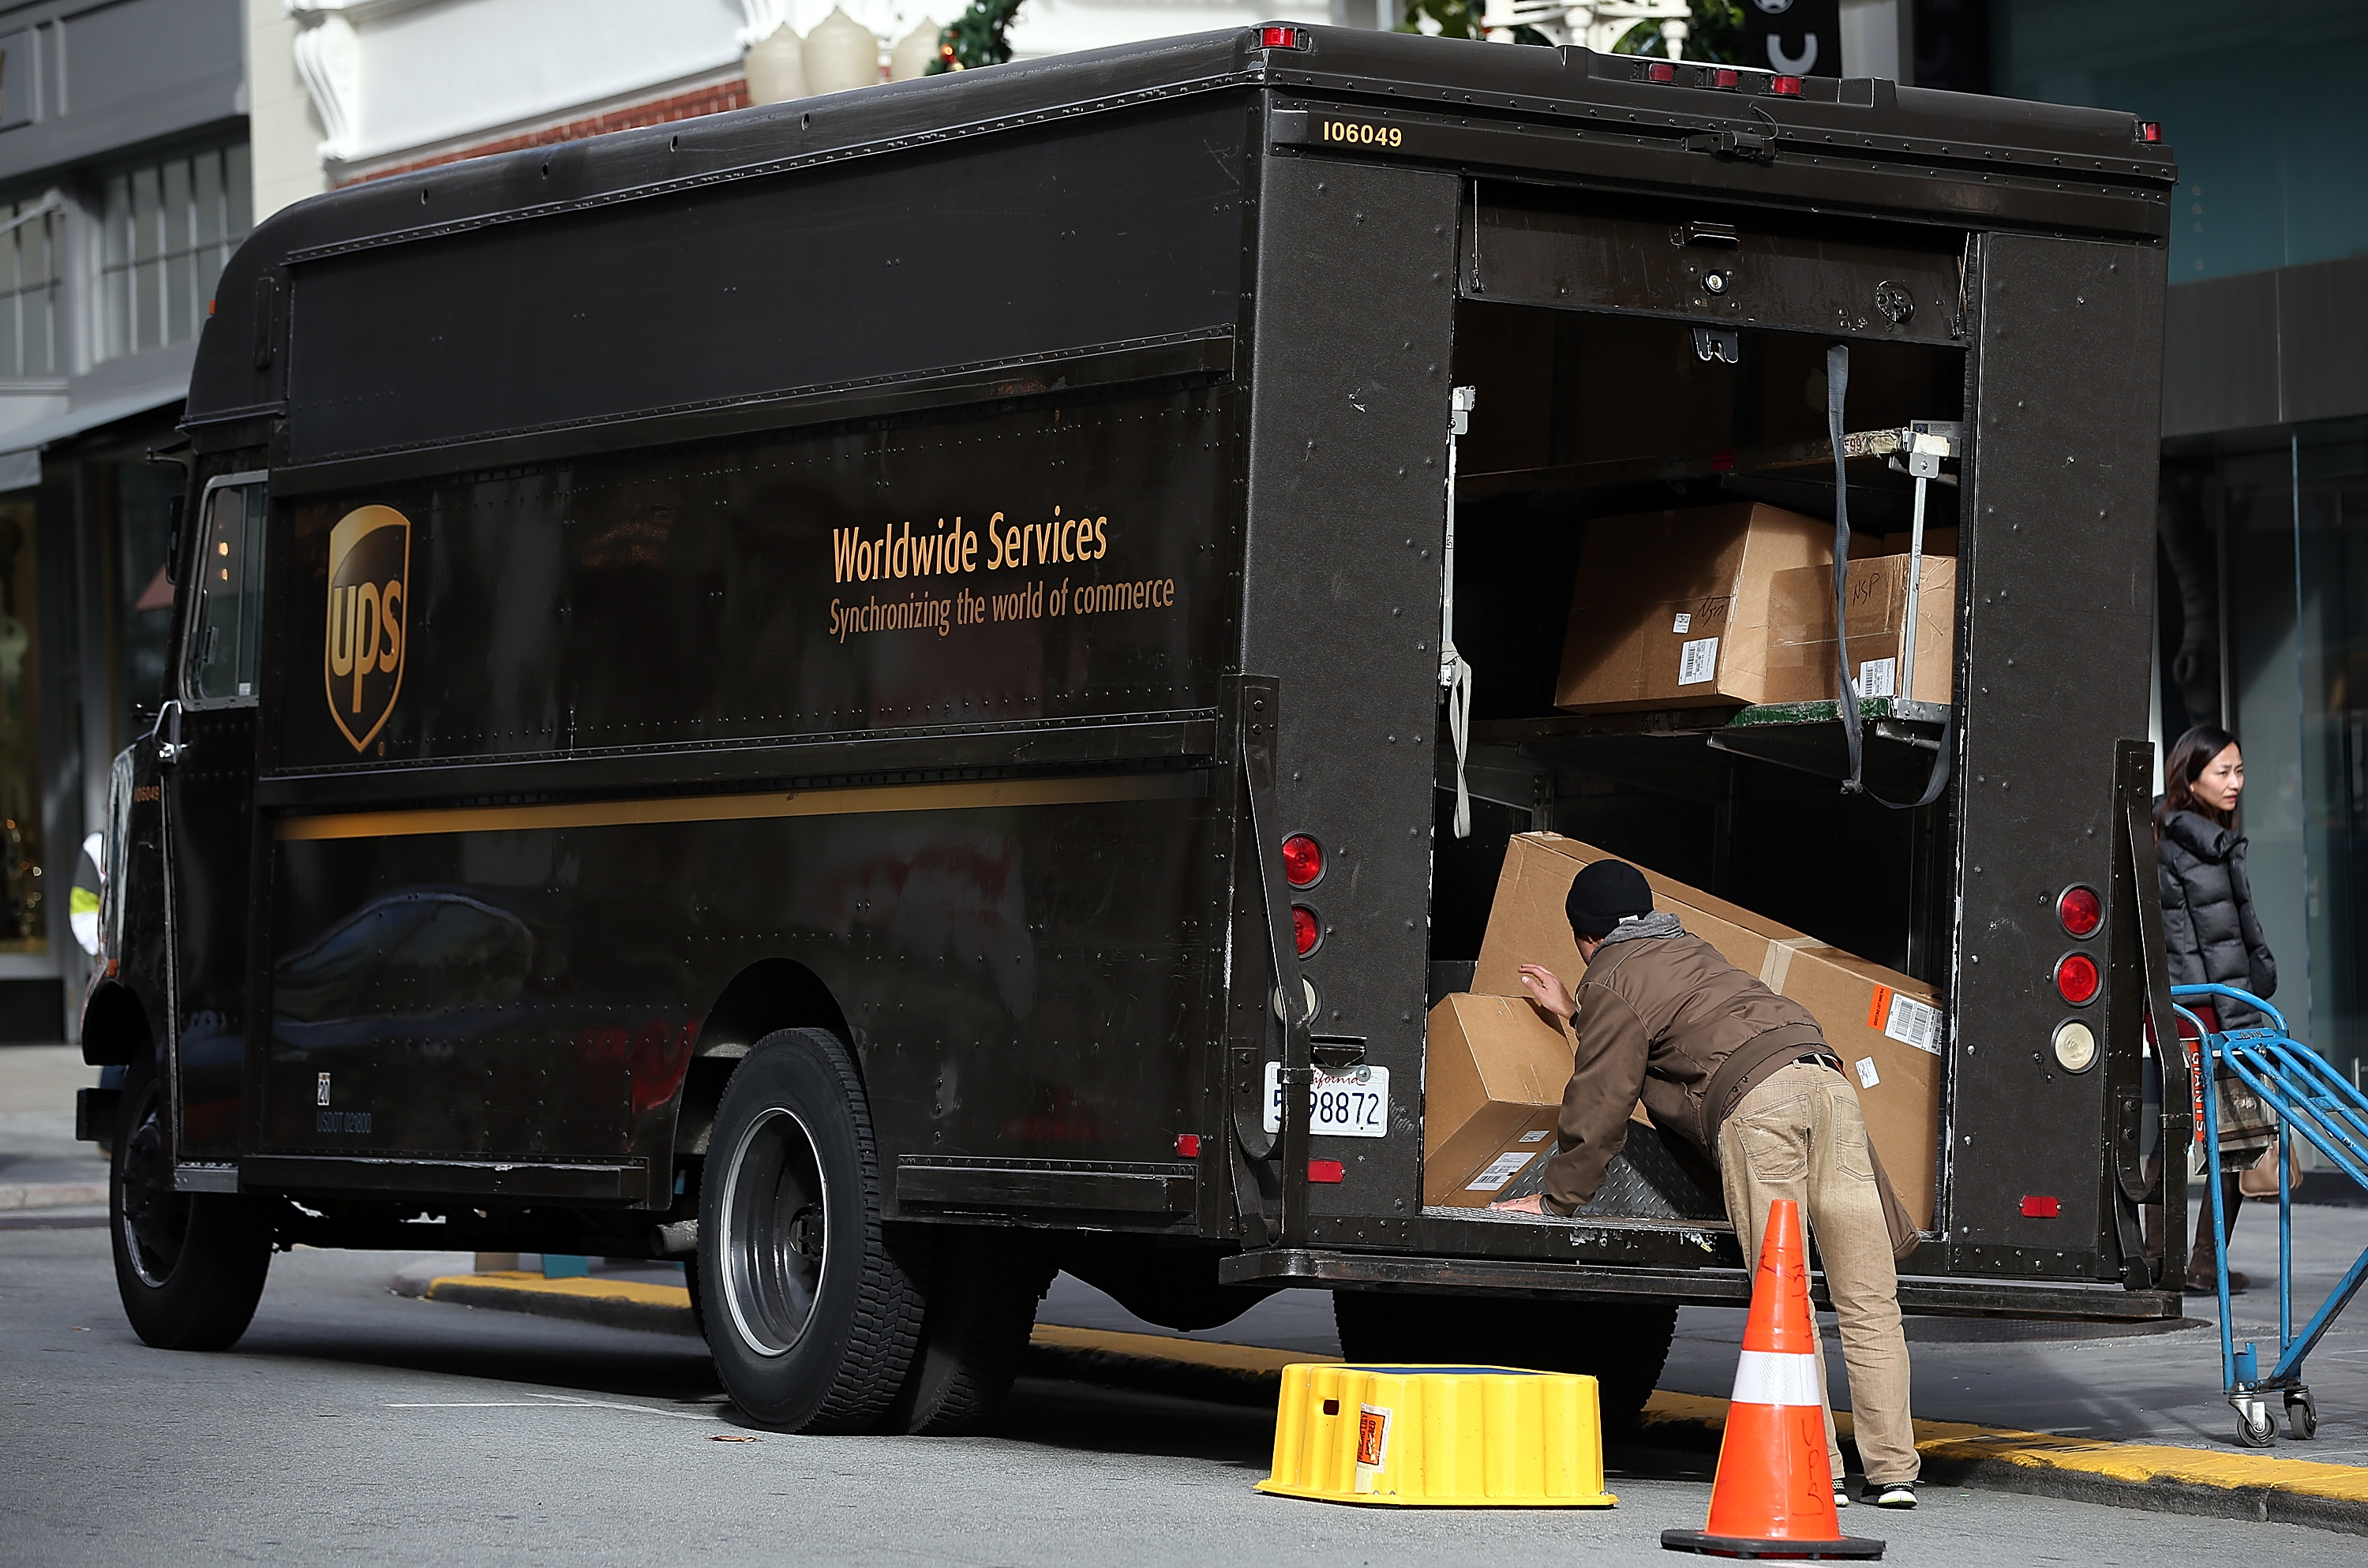 A UPS worker unloads packages from his truck on December 20, 2012 in San Francisco, California.